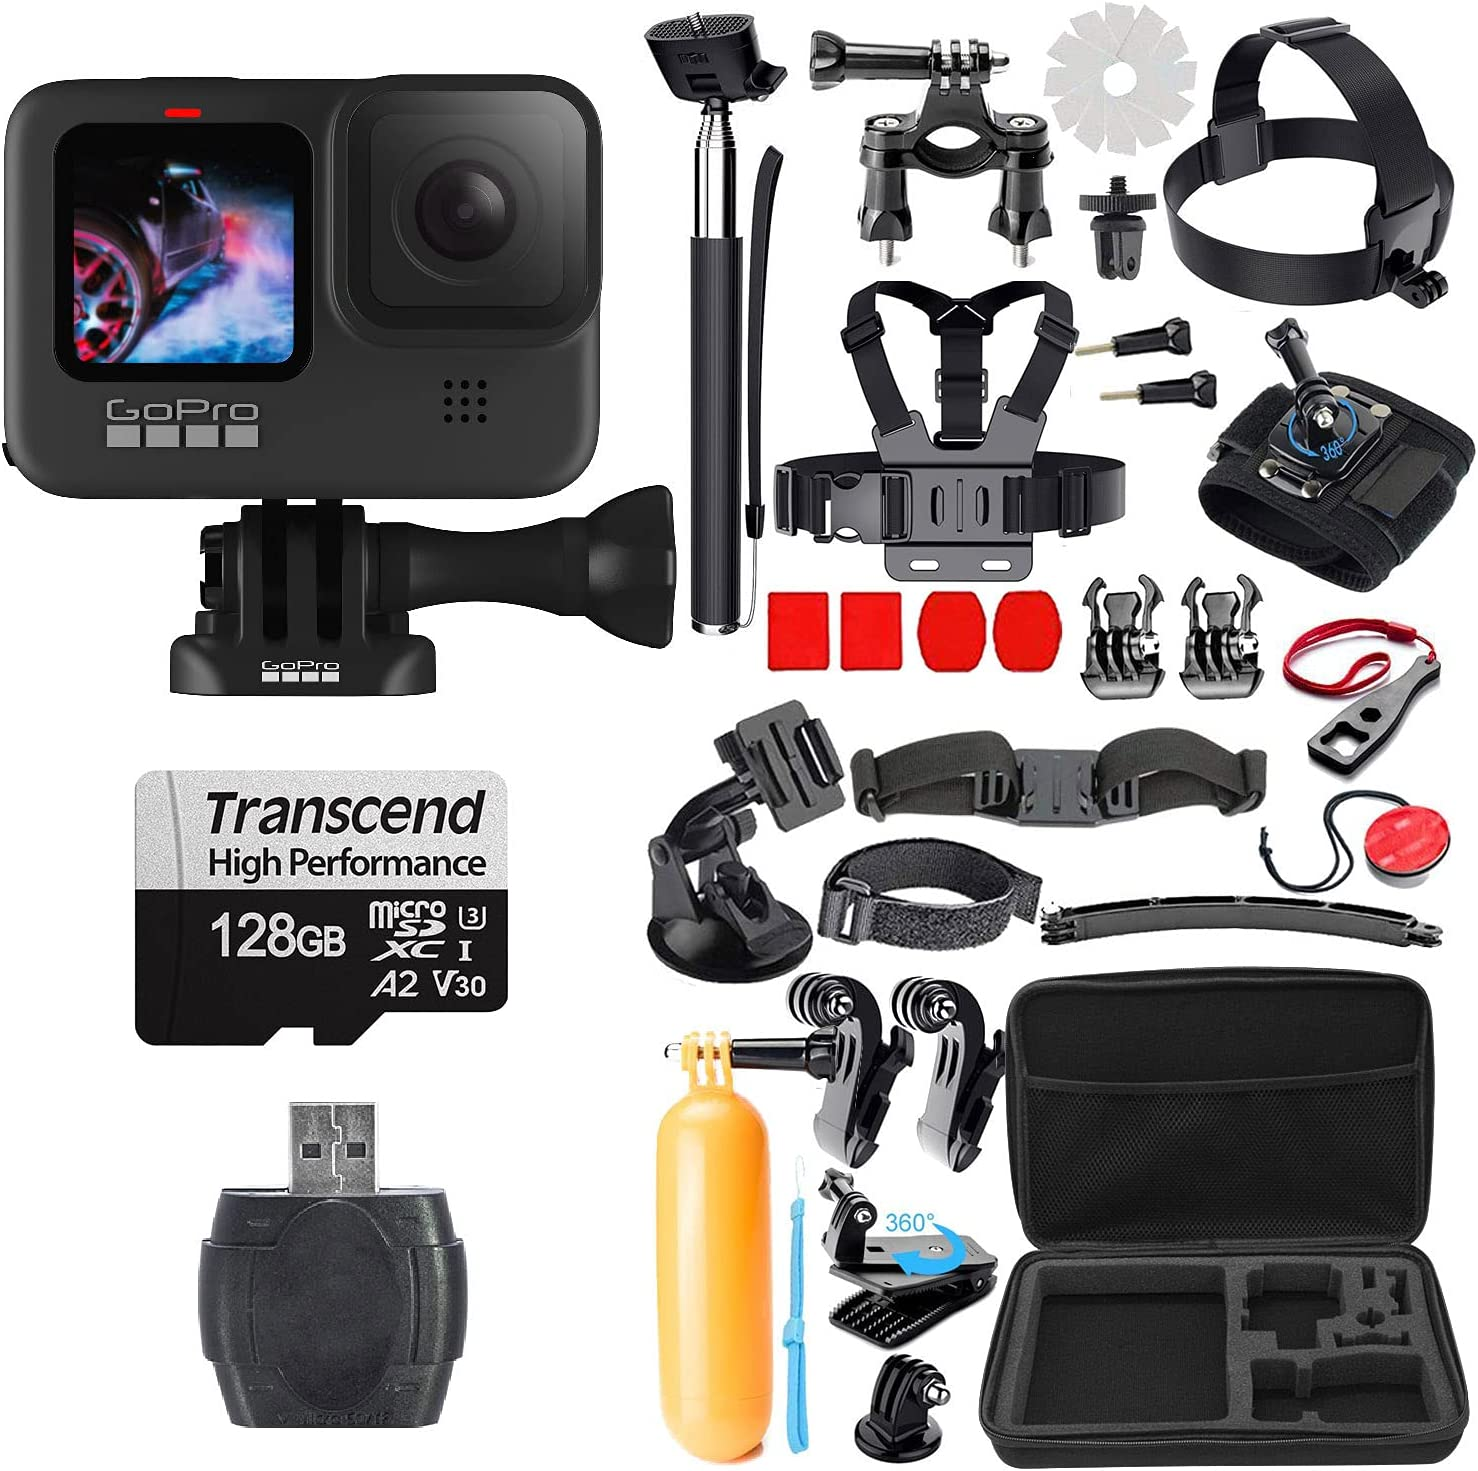 Seattle Mall GoPro Phoenix Mall Hero 9 Black with Micro SD Acces + Piece Action 38 Striker